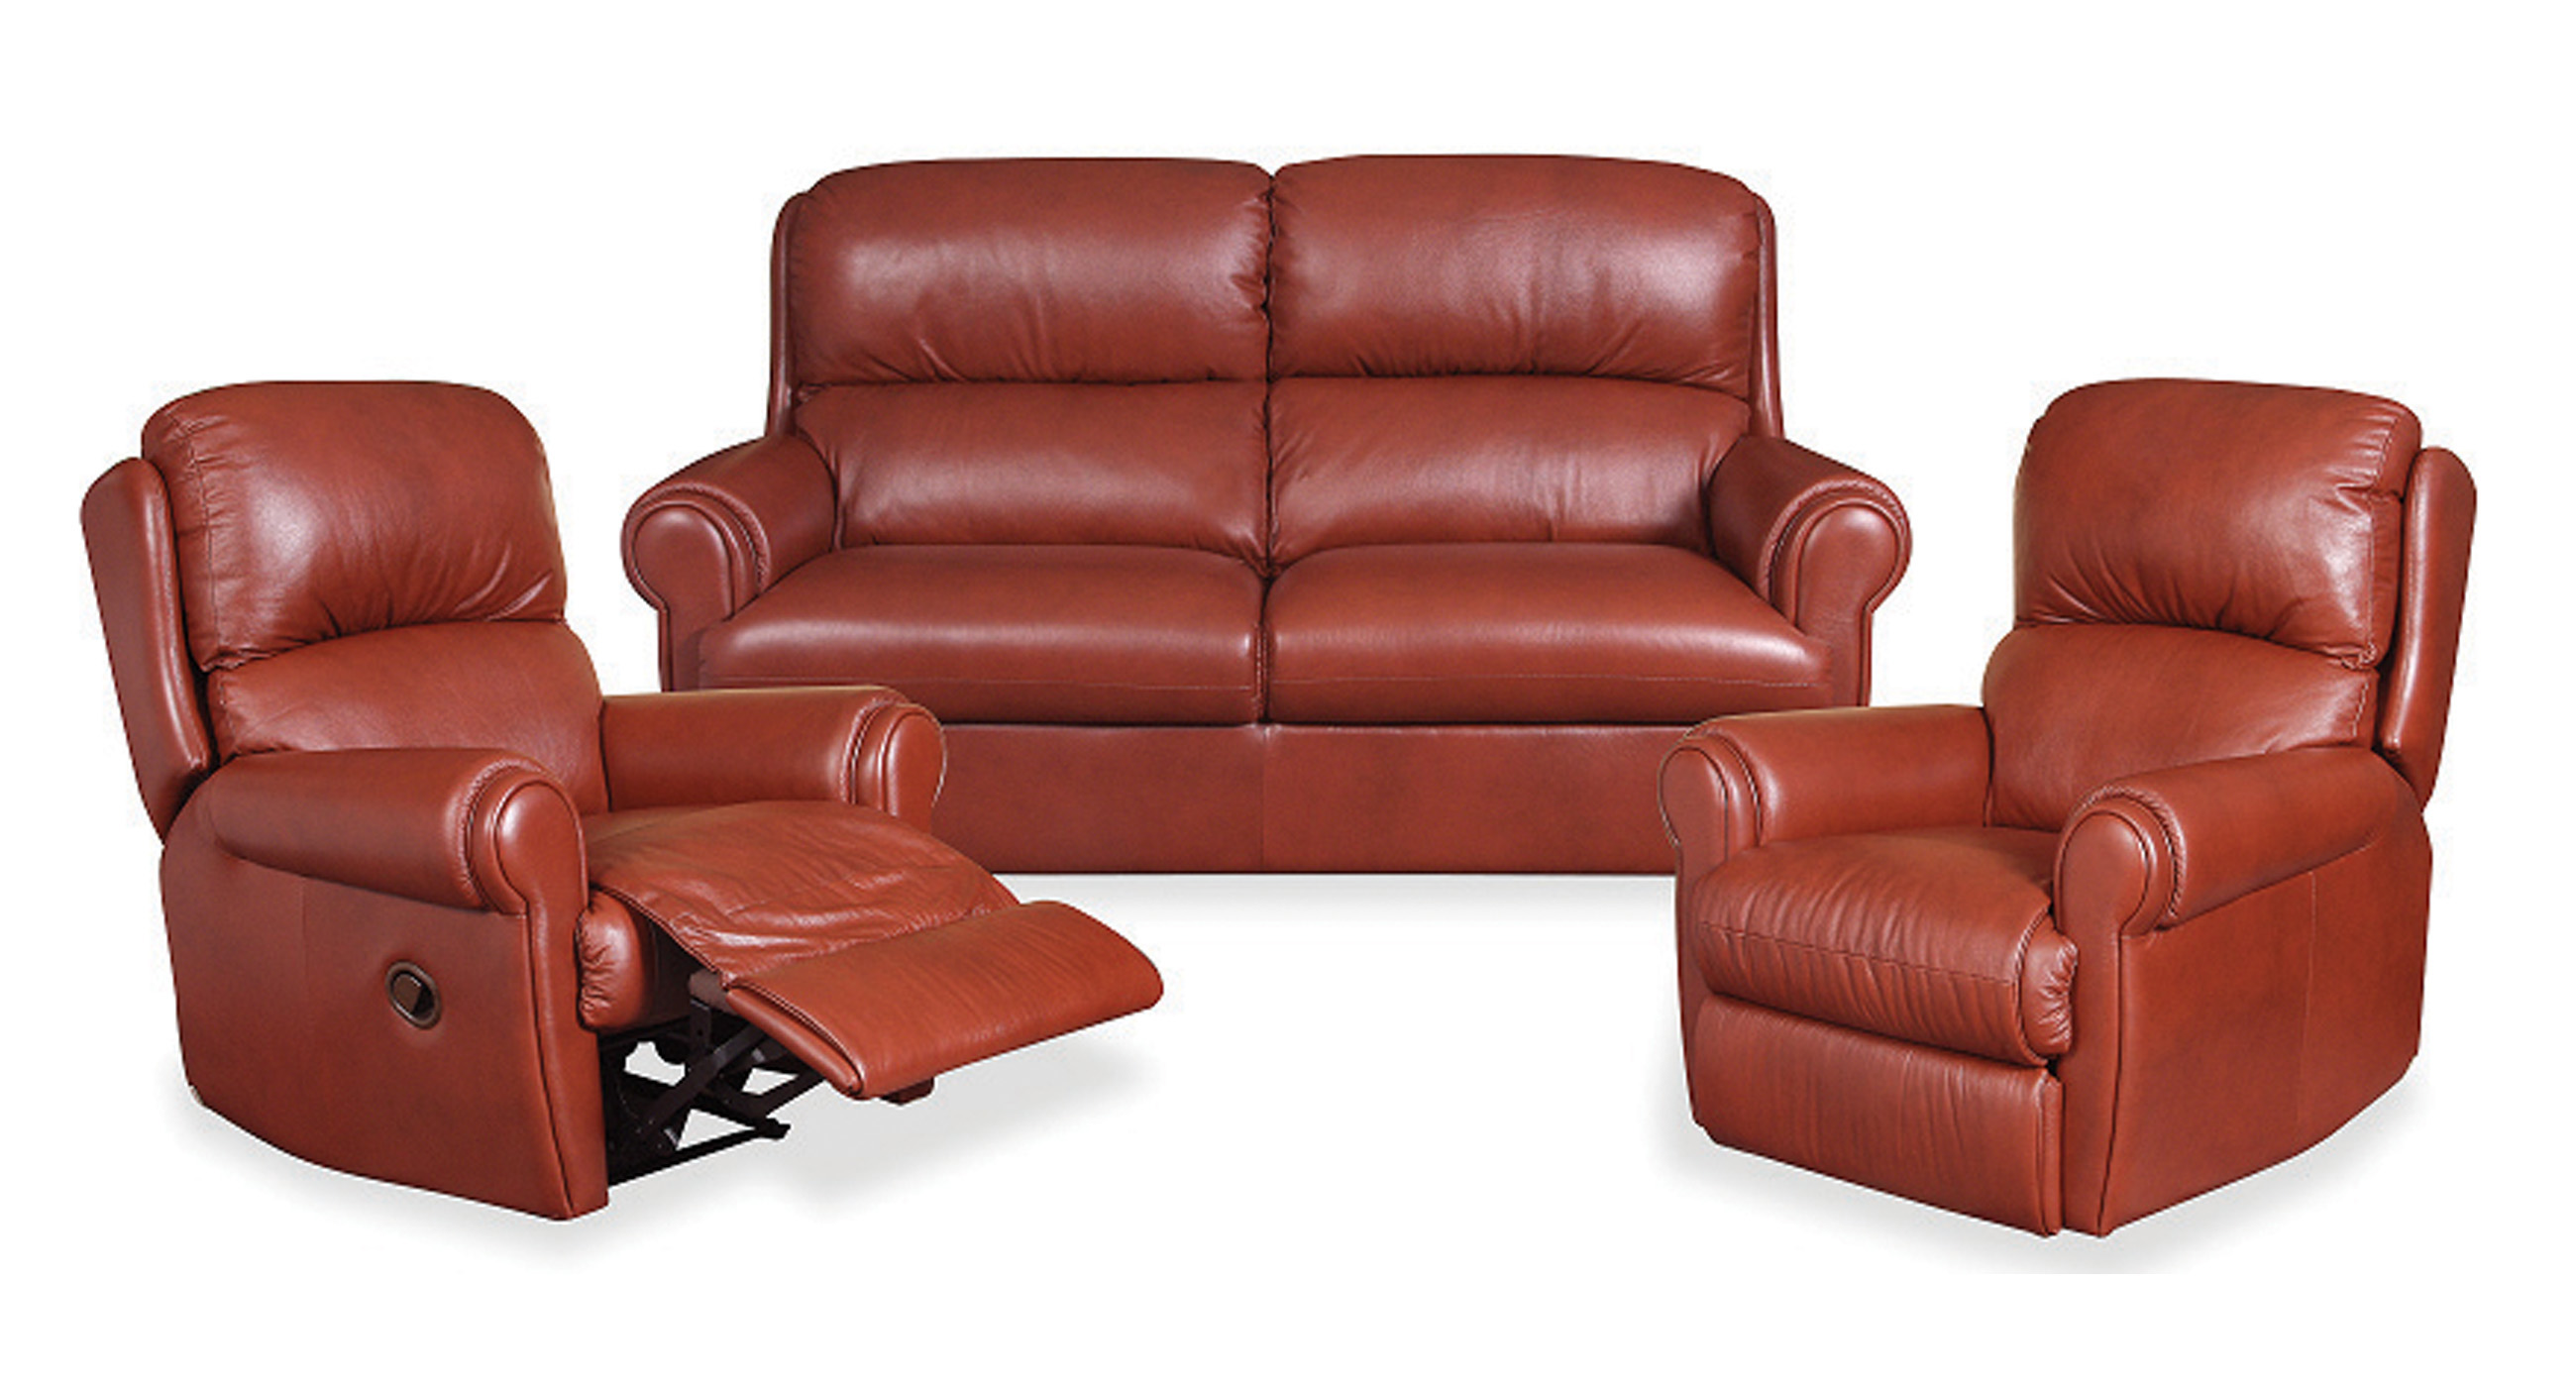 Phillip Reclining Sofa and Chairs